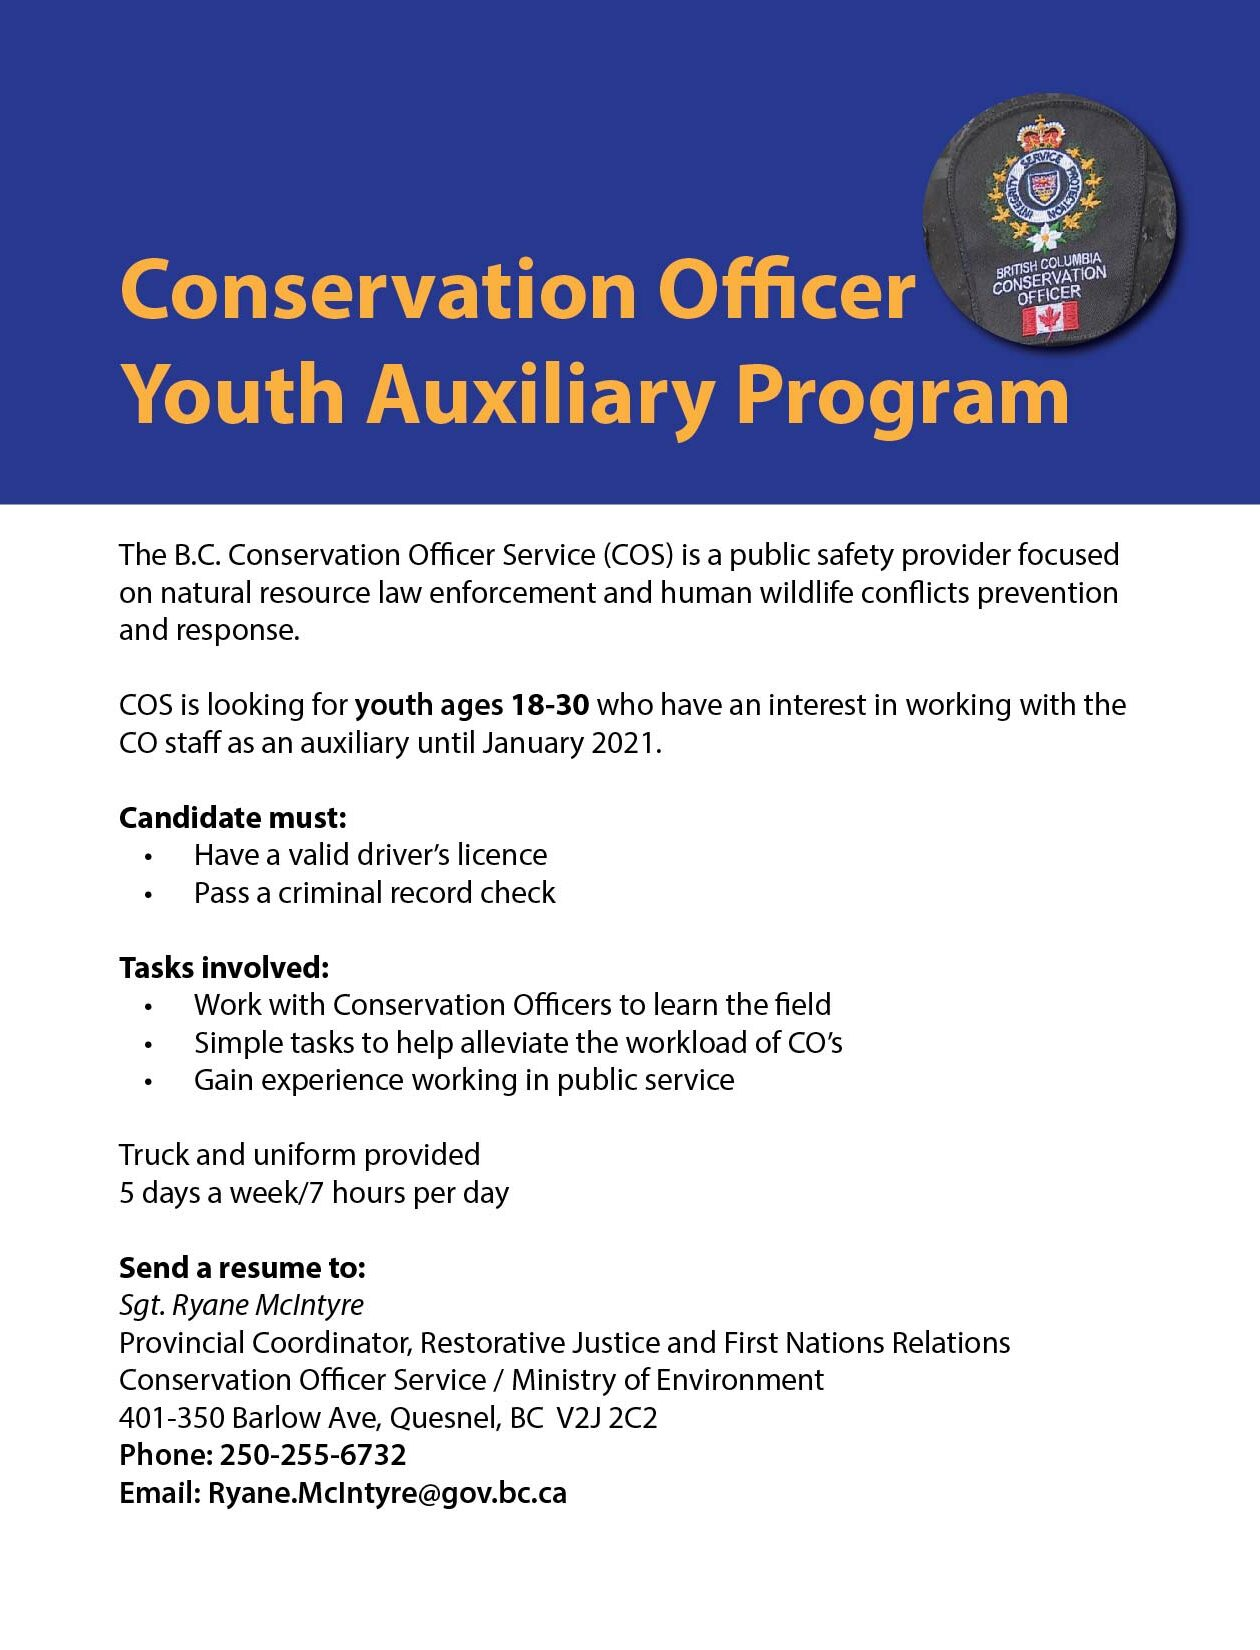 conservation officer youth auxiliary program kitsumkalum galts ap community of the Resume Conservation Officer Resume